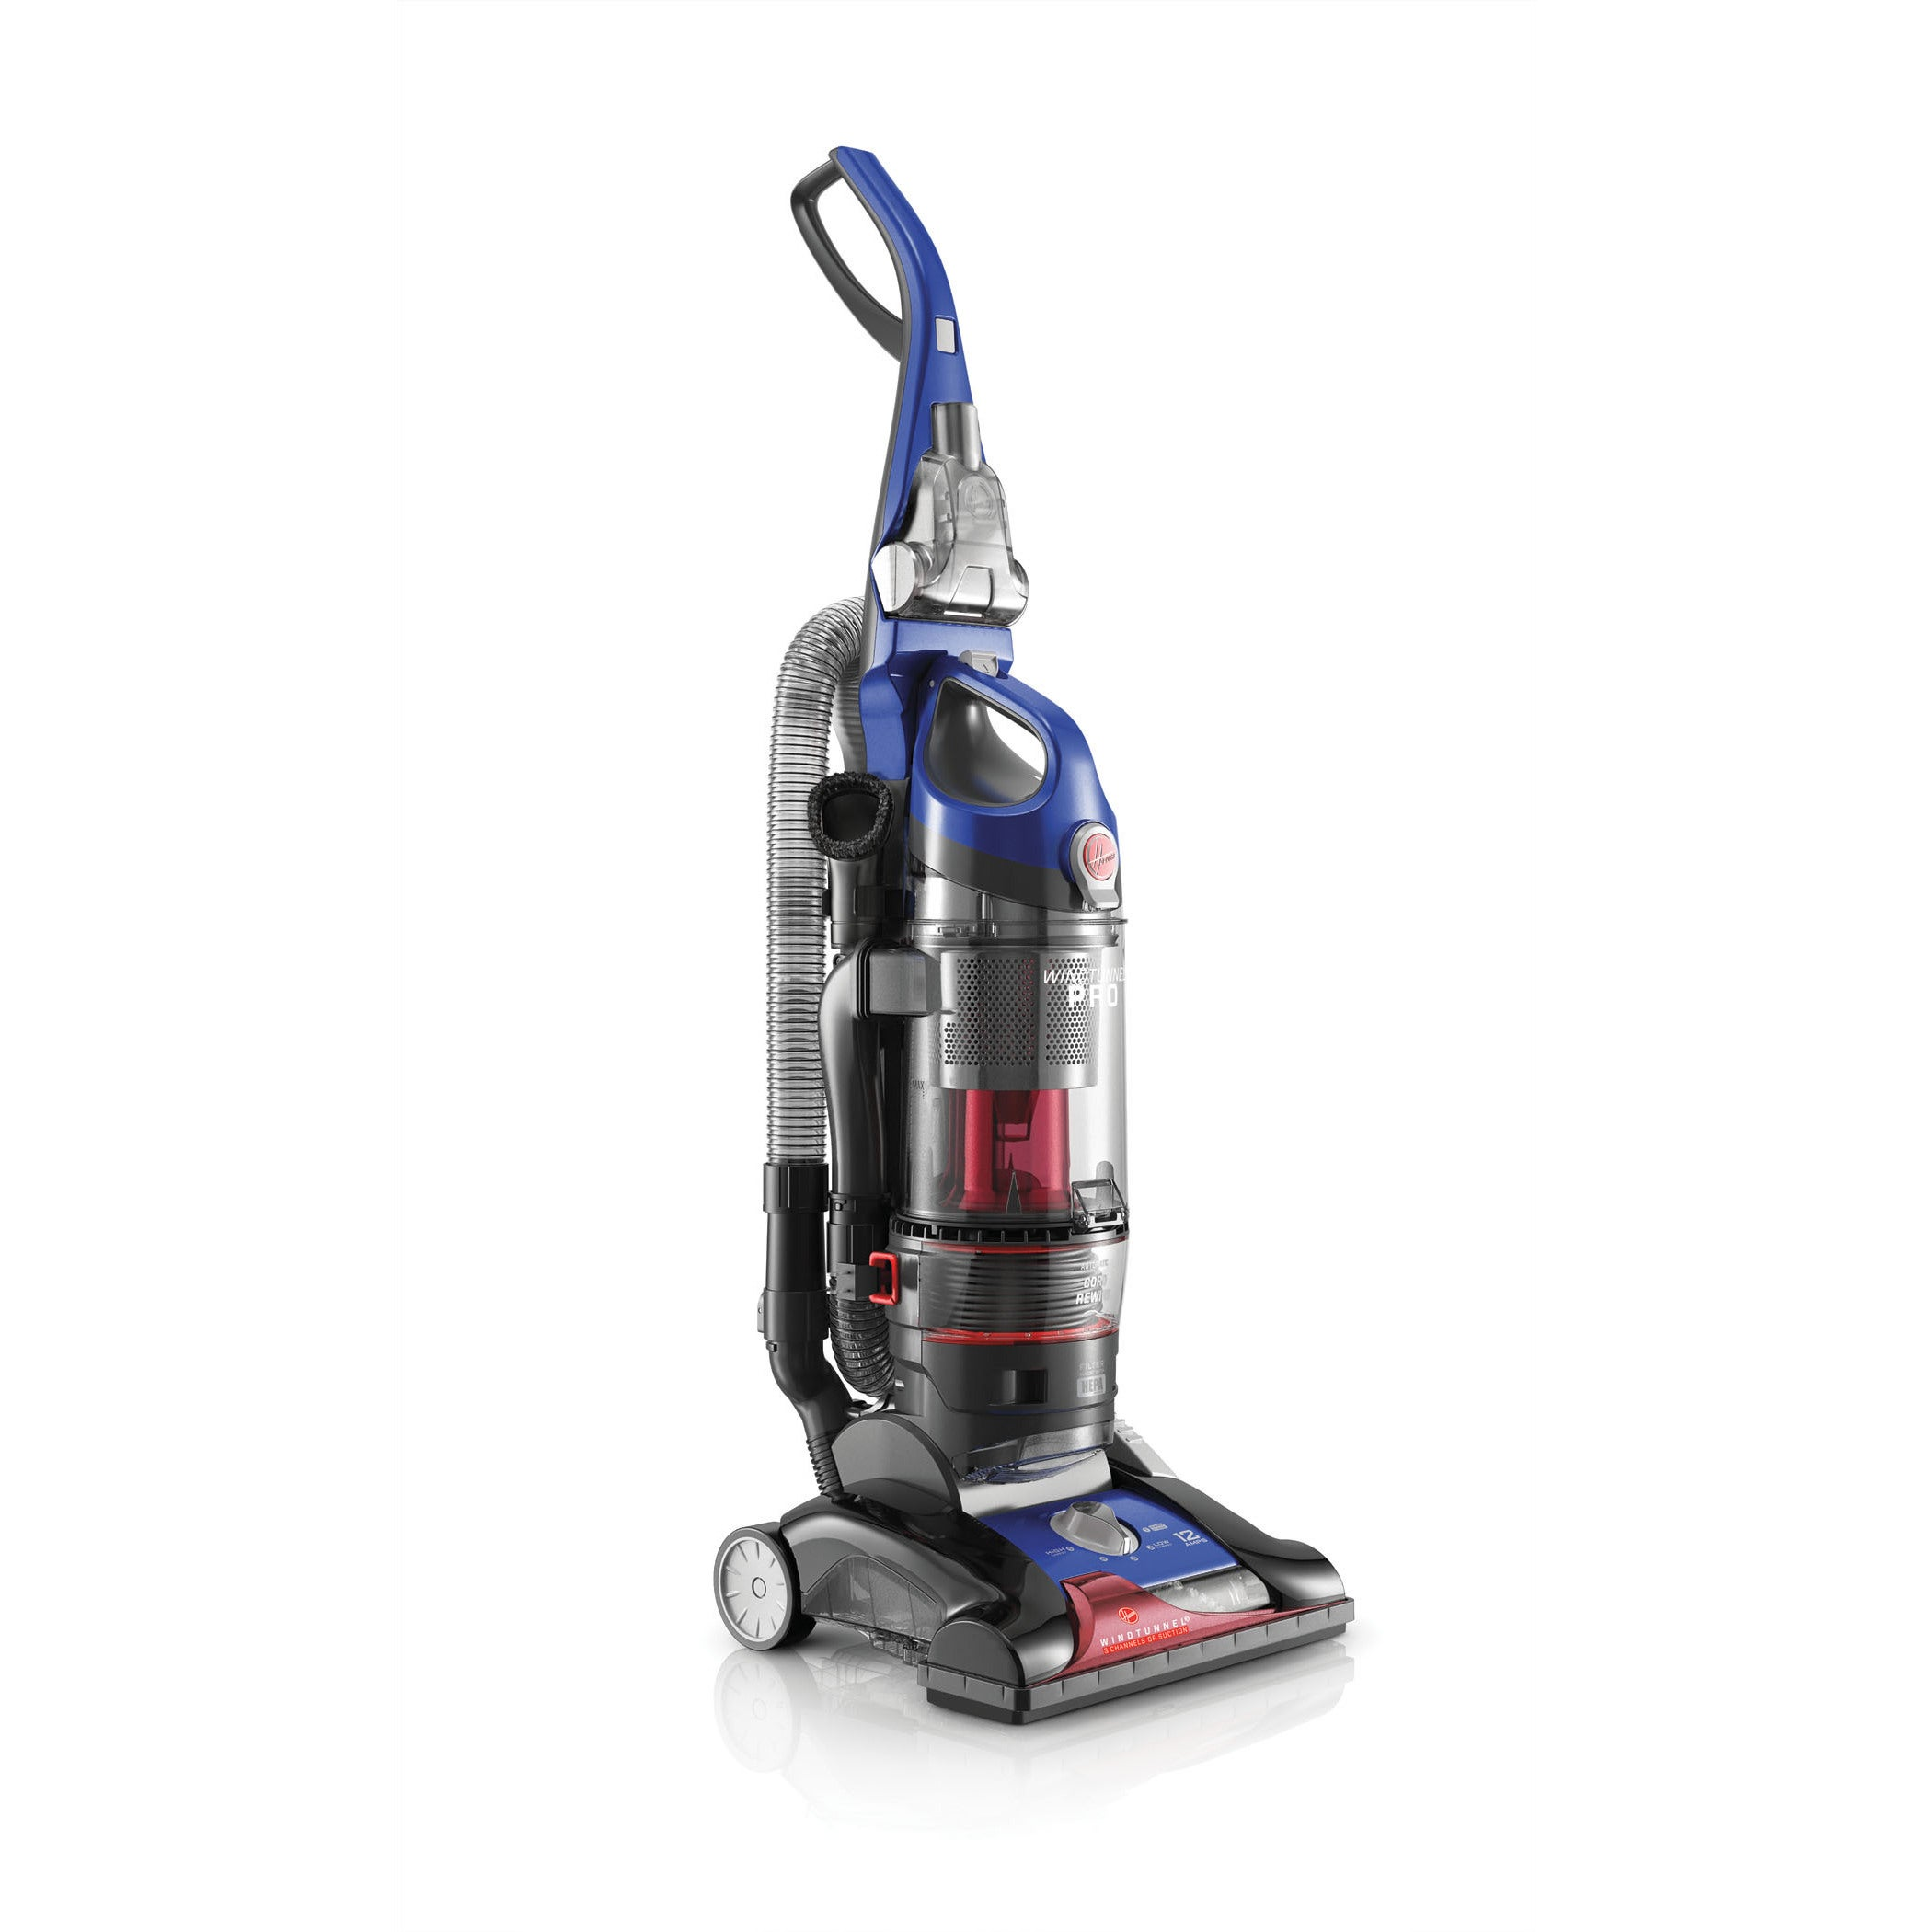 Hoover UH70905 WindTunnel 3 Bagless Upright Cobalt Blue Vacuum at Sears.com